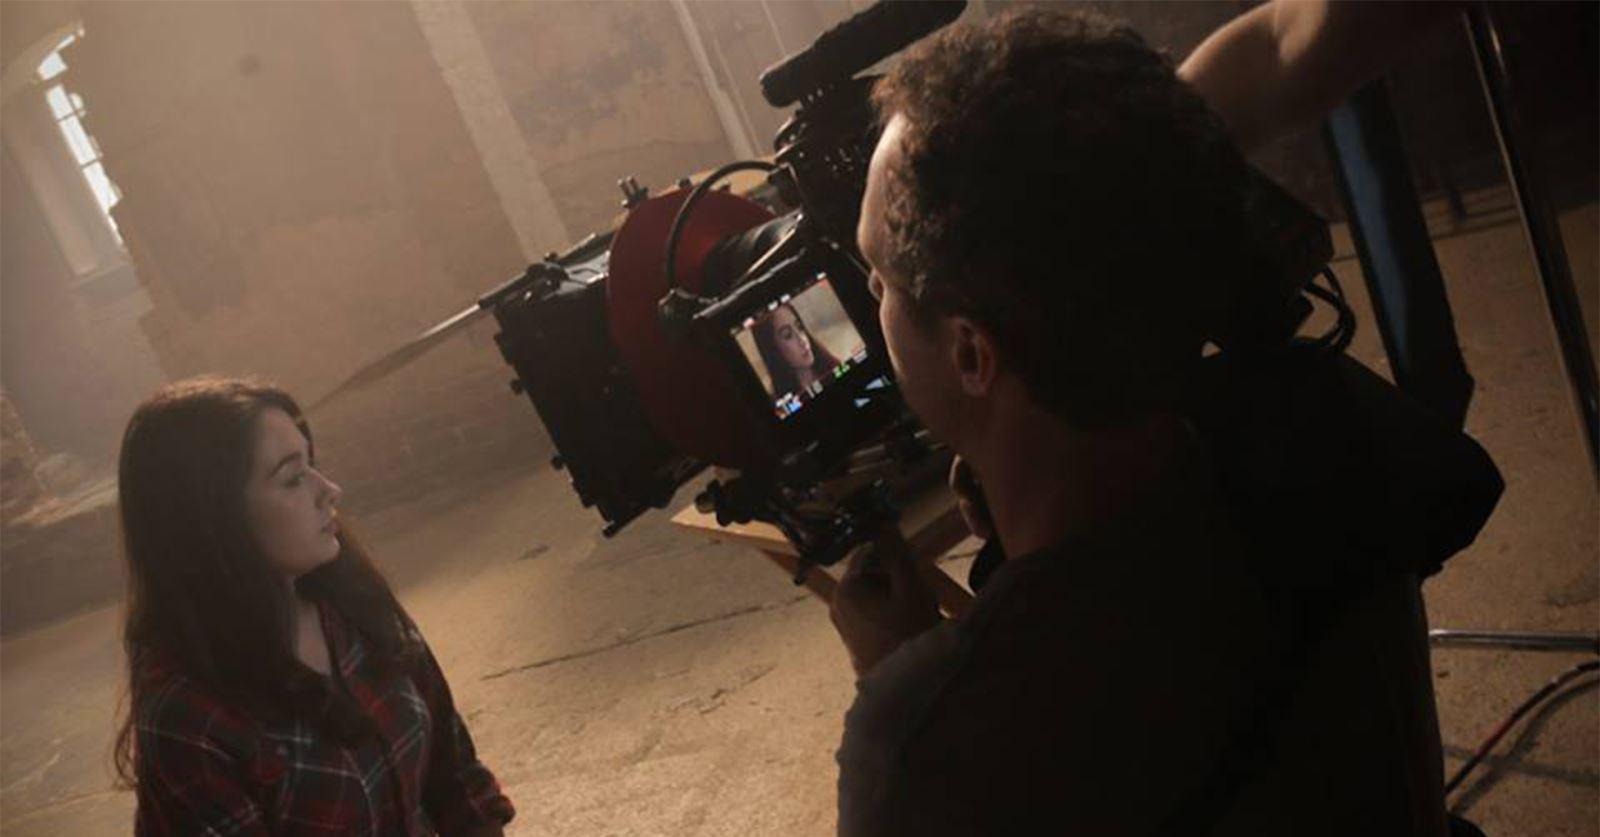 GTC member Heath McWaters on set as DoP on a recent music video shoot